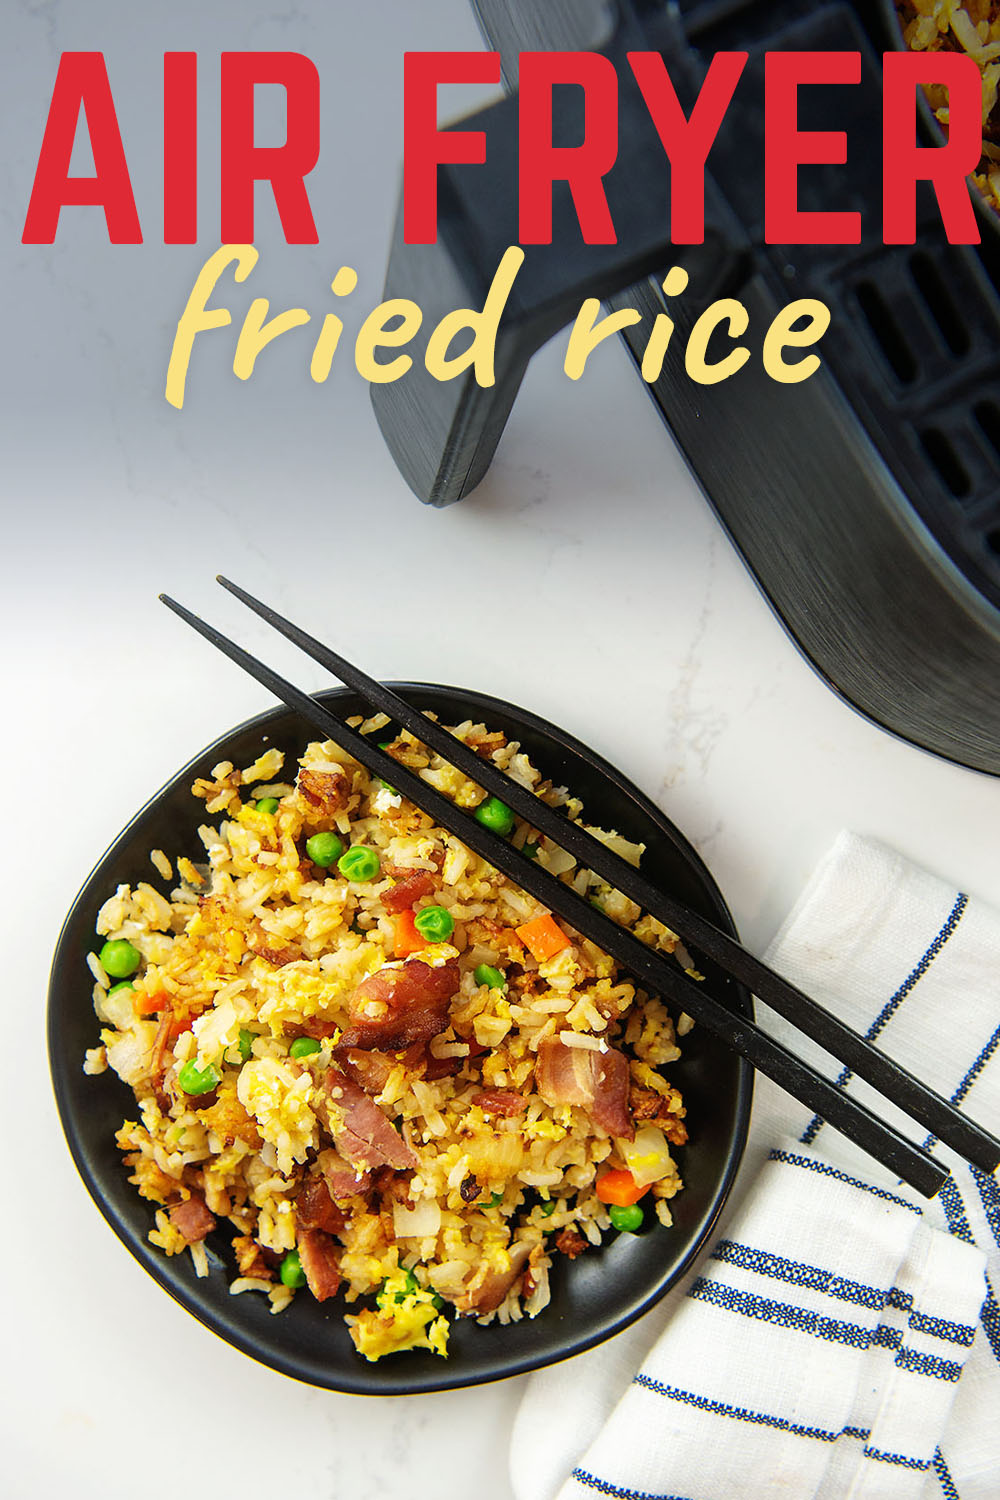 An air fryer next to a plate of fried rice.